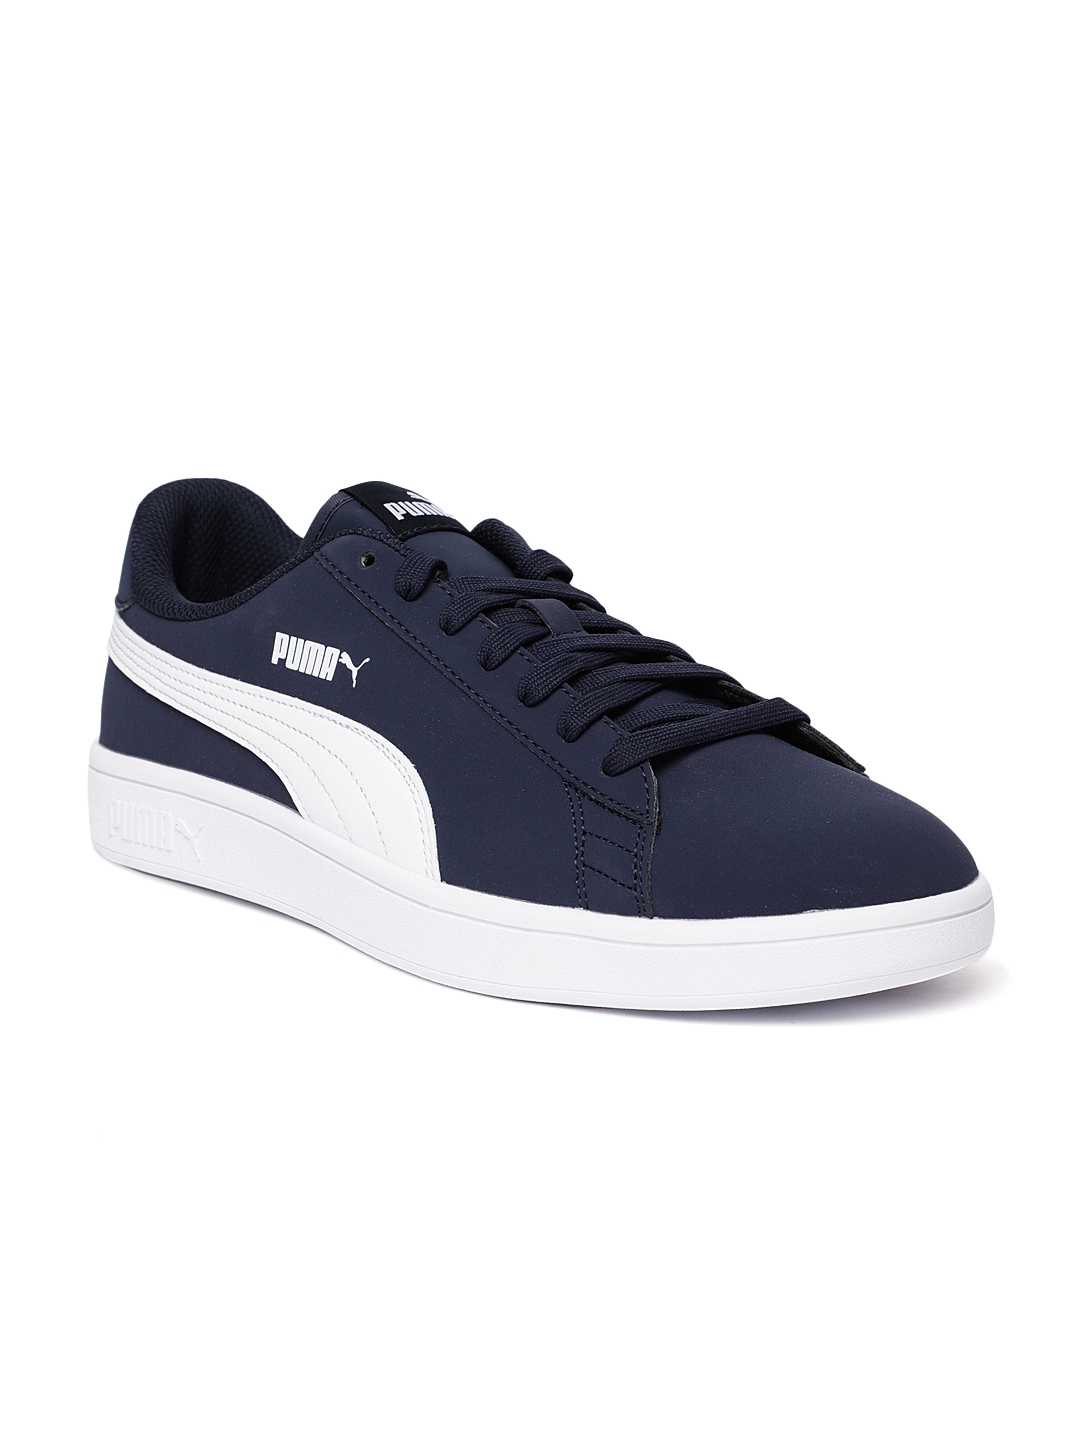 bb8d8ba117d Buy Puma Unisex Navy Blue Smash V2 Buck Sneakers - Casual Shoes for ...